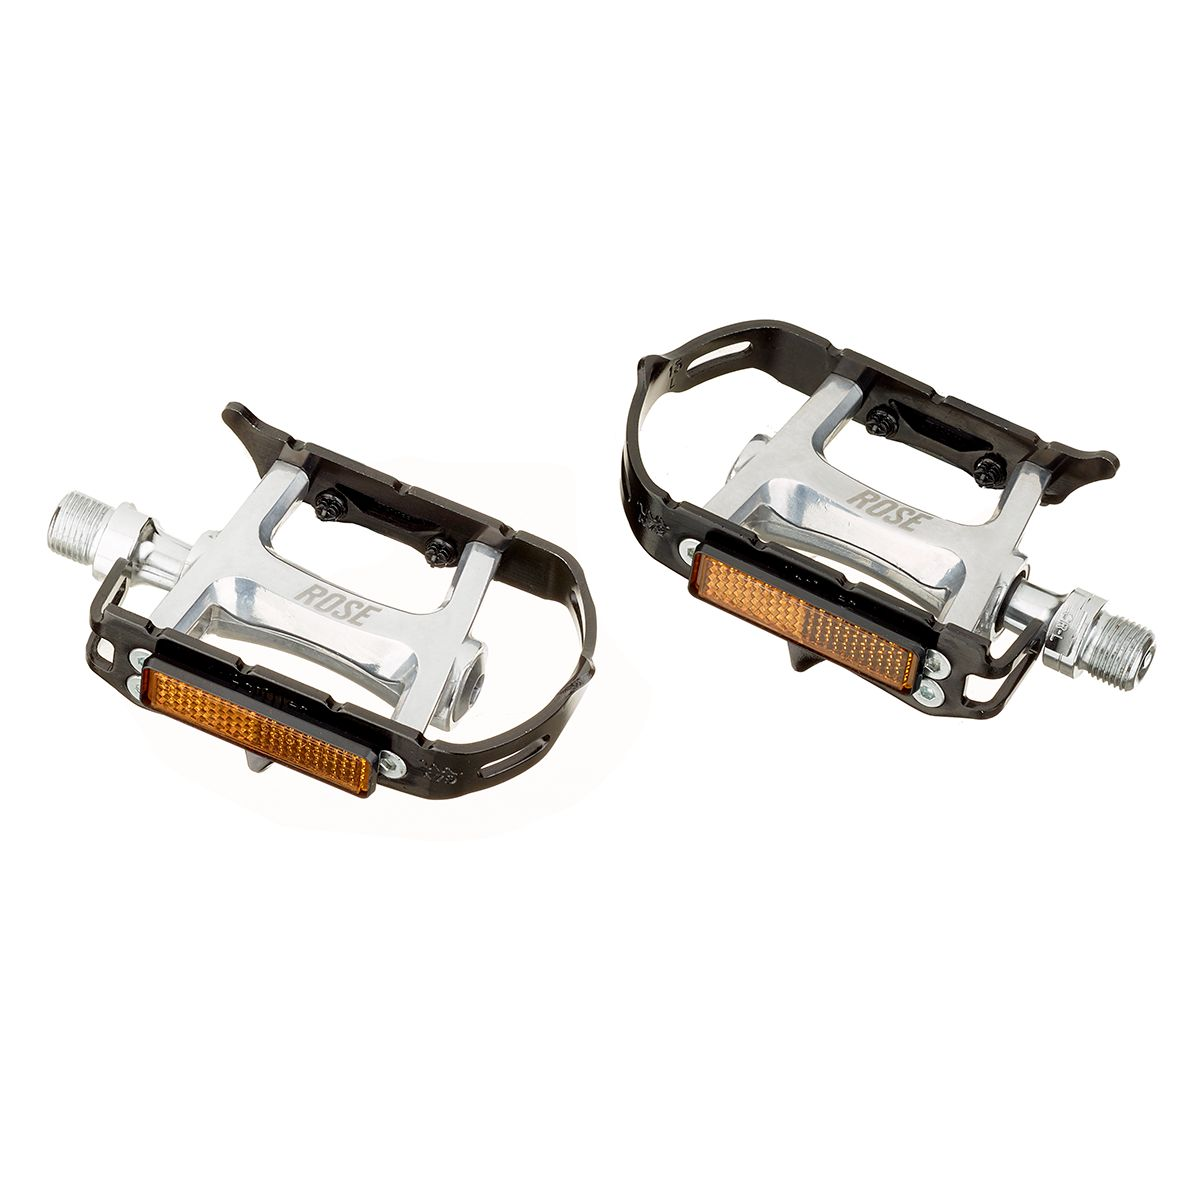 Sport R-104 pedals